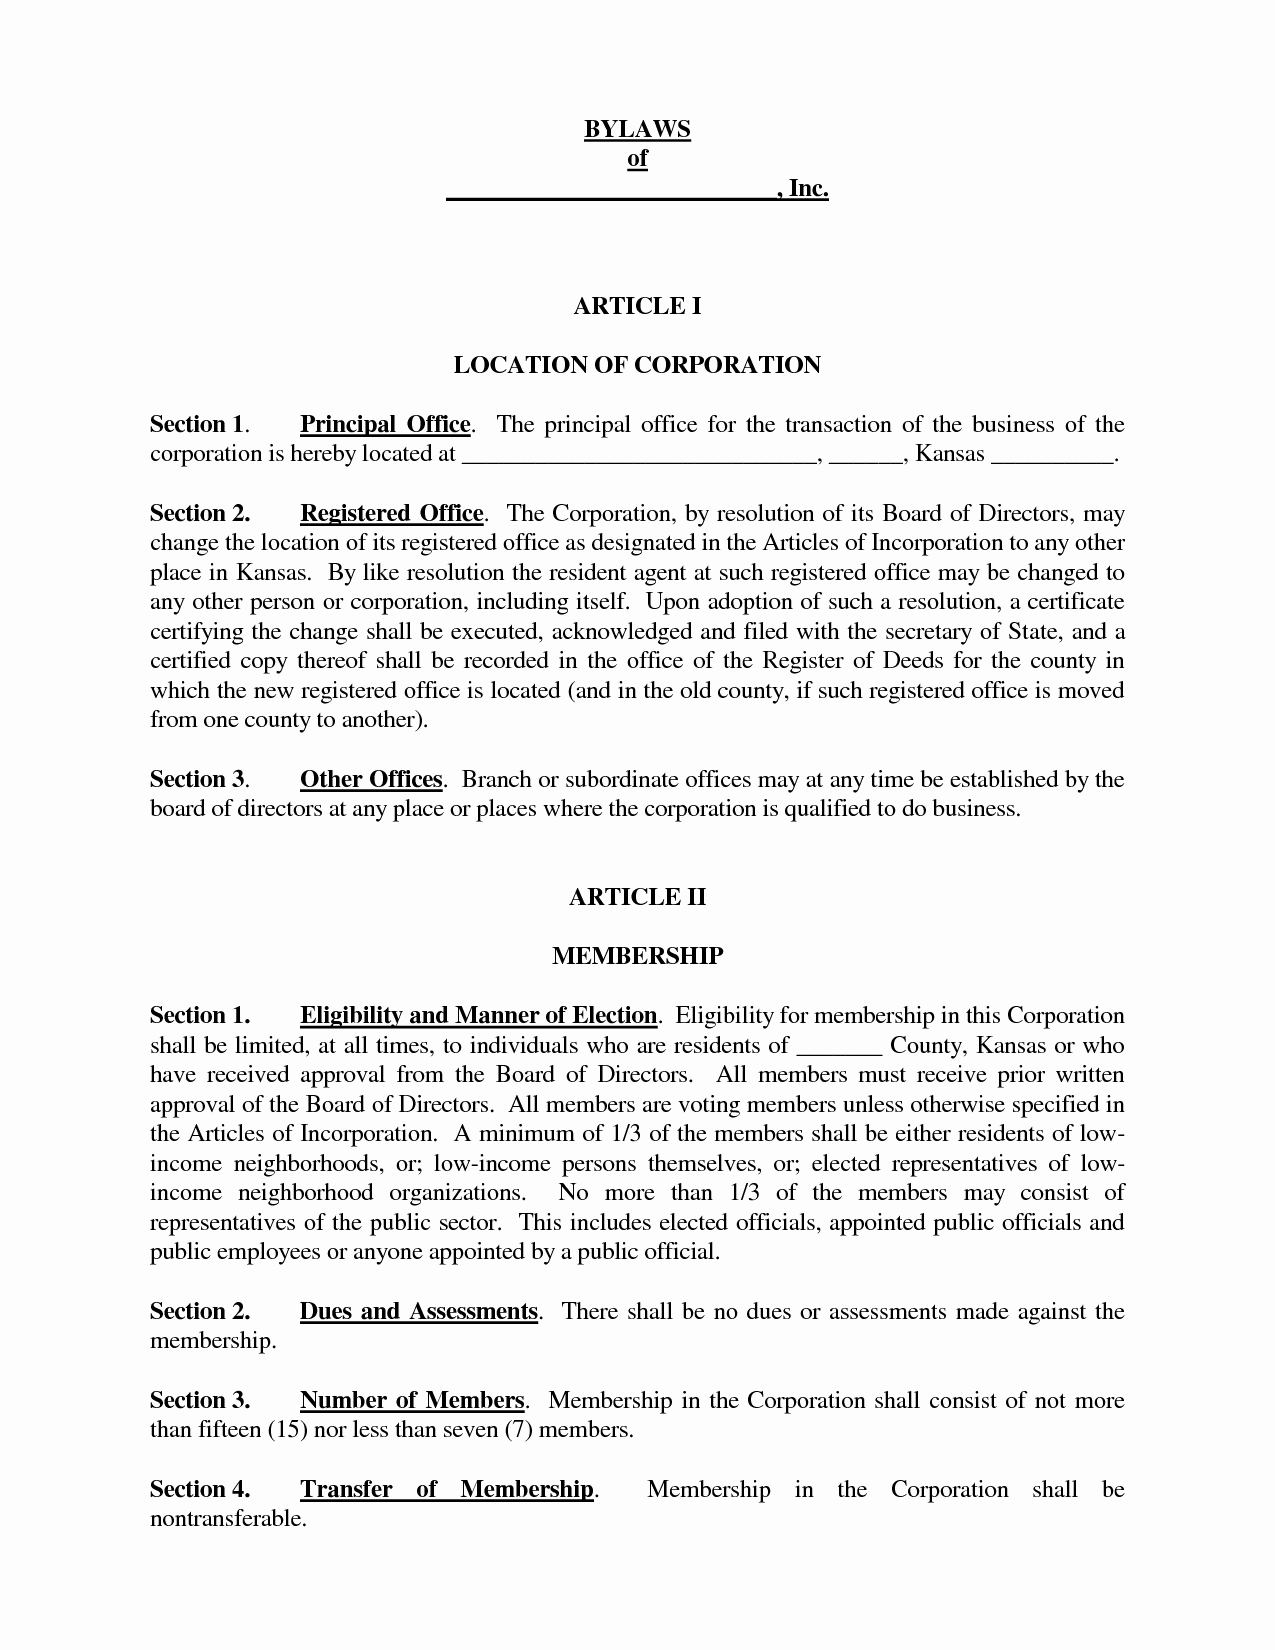 Corporate bylaws Template Free Elegant Template bylaws Template